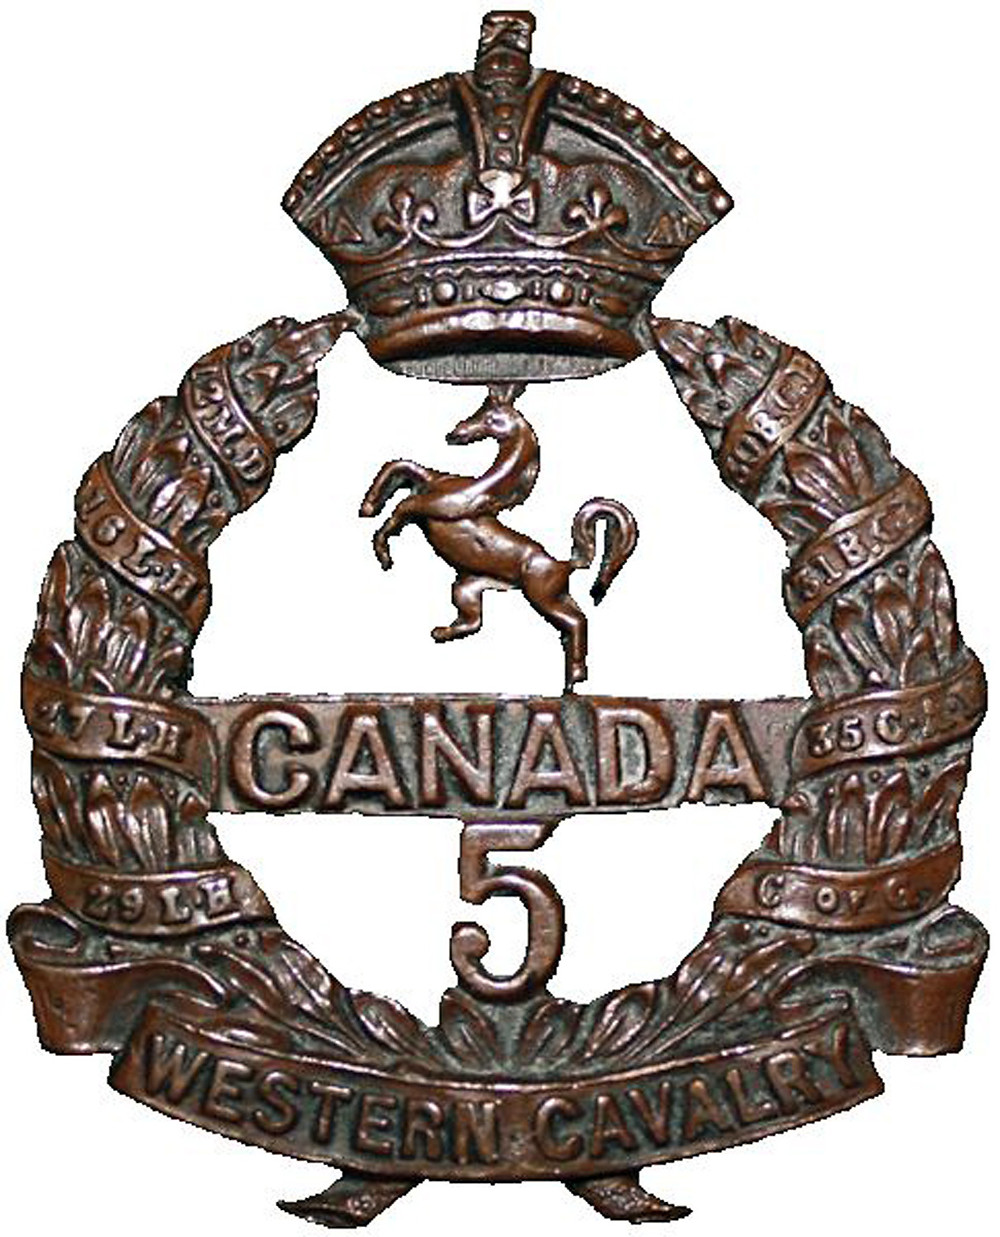 Private Duddy was with the 5th Canadian Infantry Battalion (Western Canadian Cavalry) when he was killed in action.